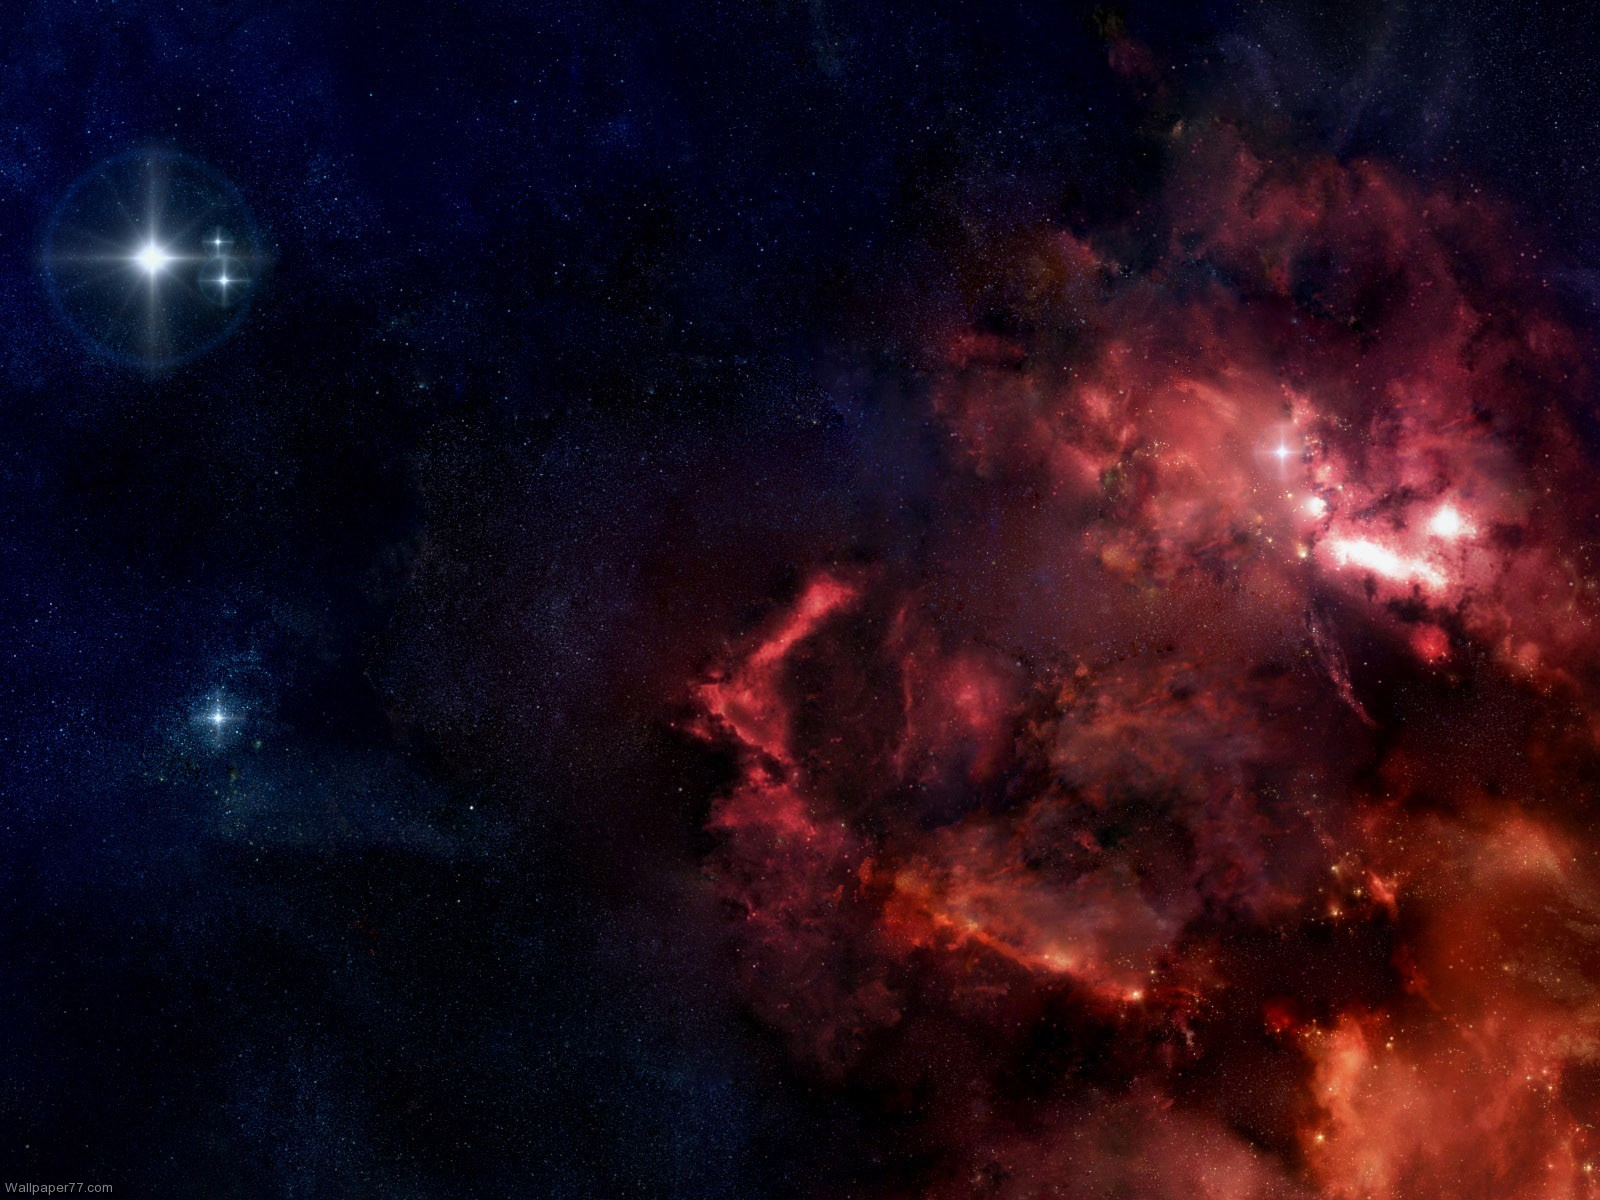 Red Space Clouds Wallpapers tagged Galaxy Wallpaper Space 19487 high 1600x1200